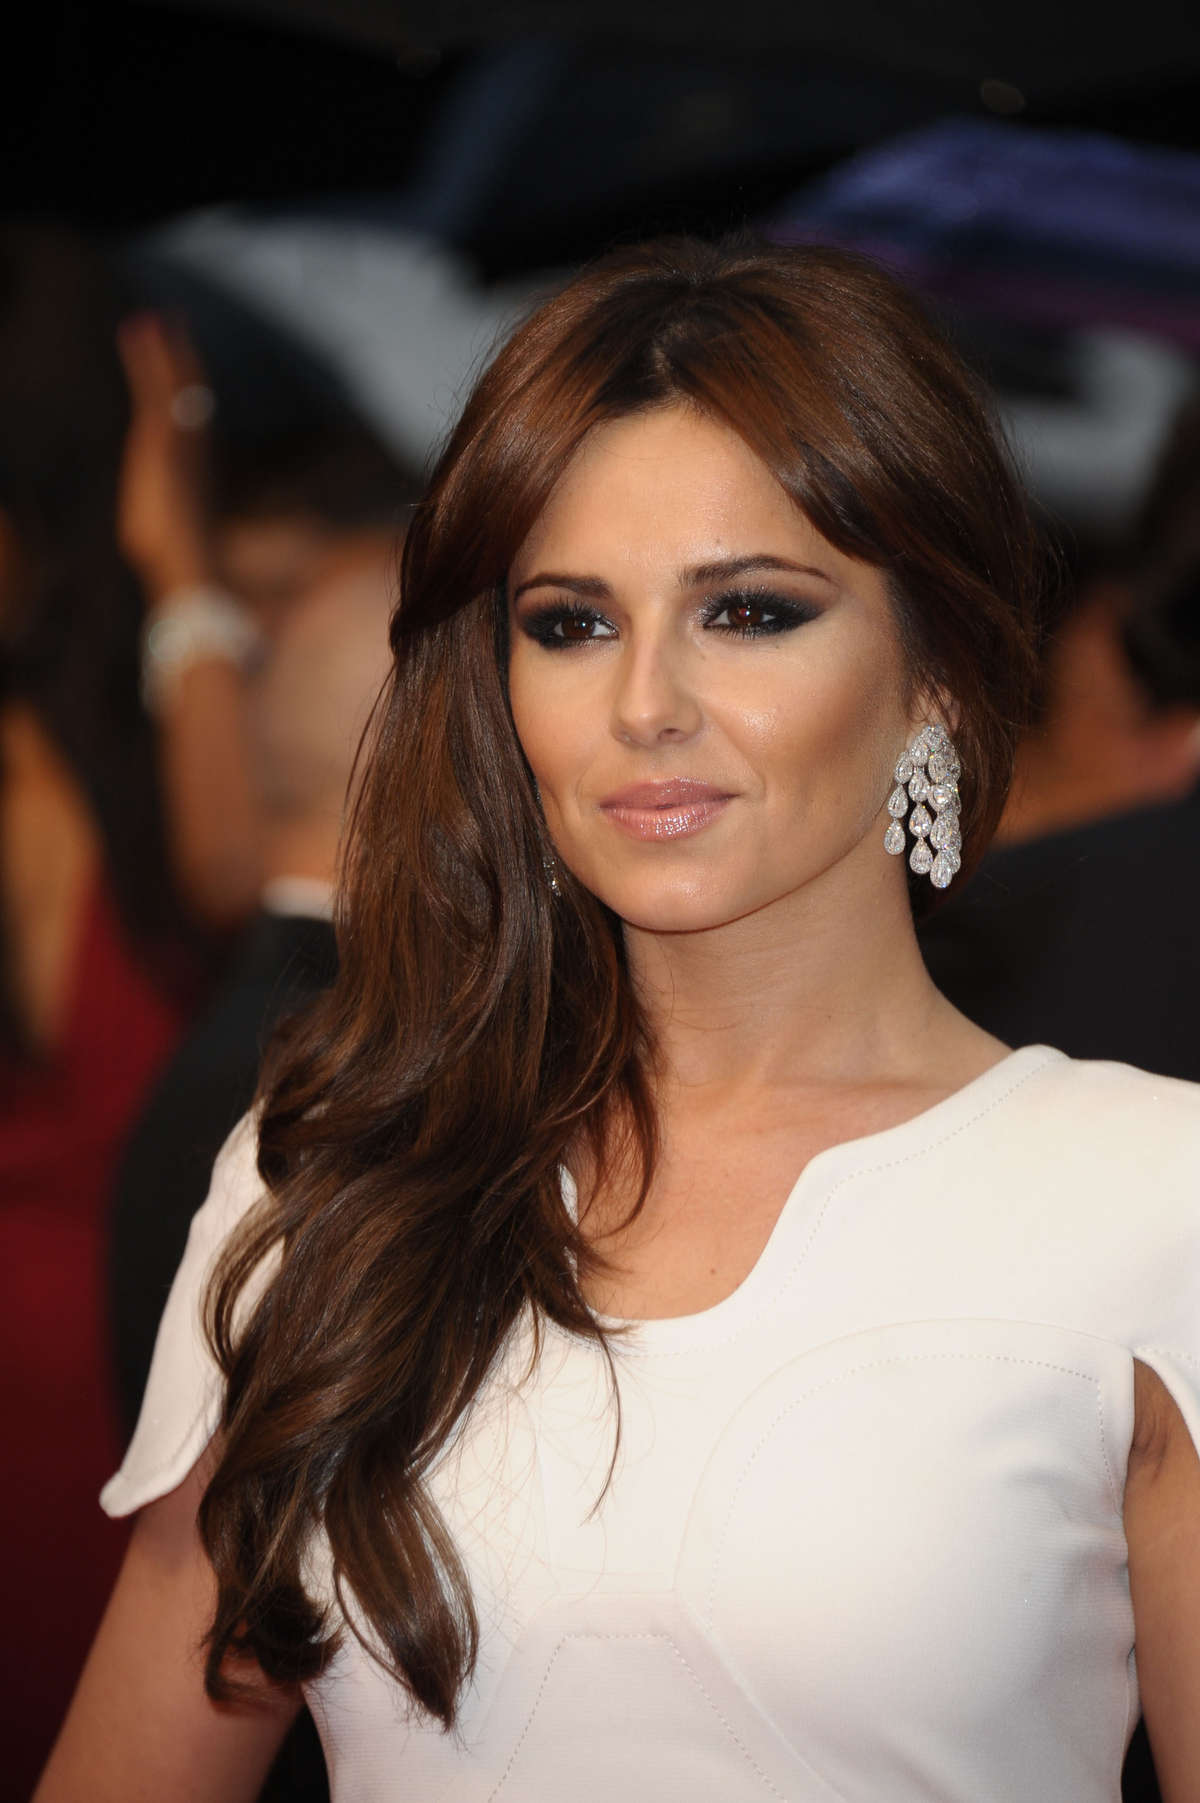 http://topnews.in/light/files/Cheryl-Cole_105.jpg